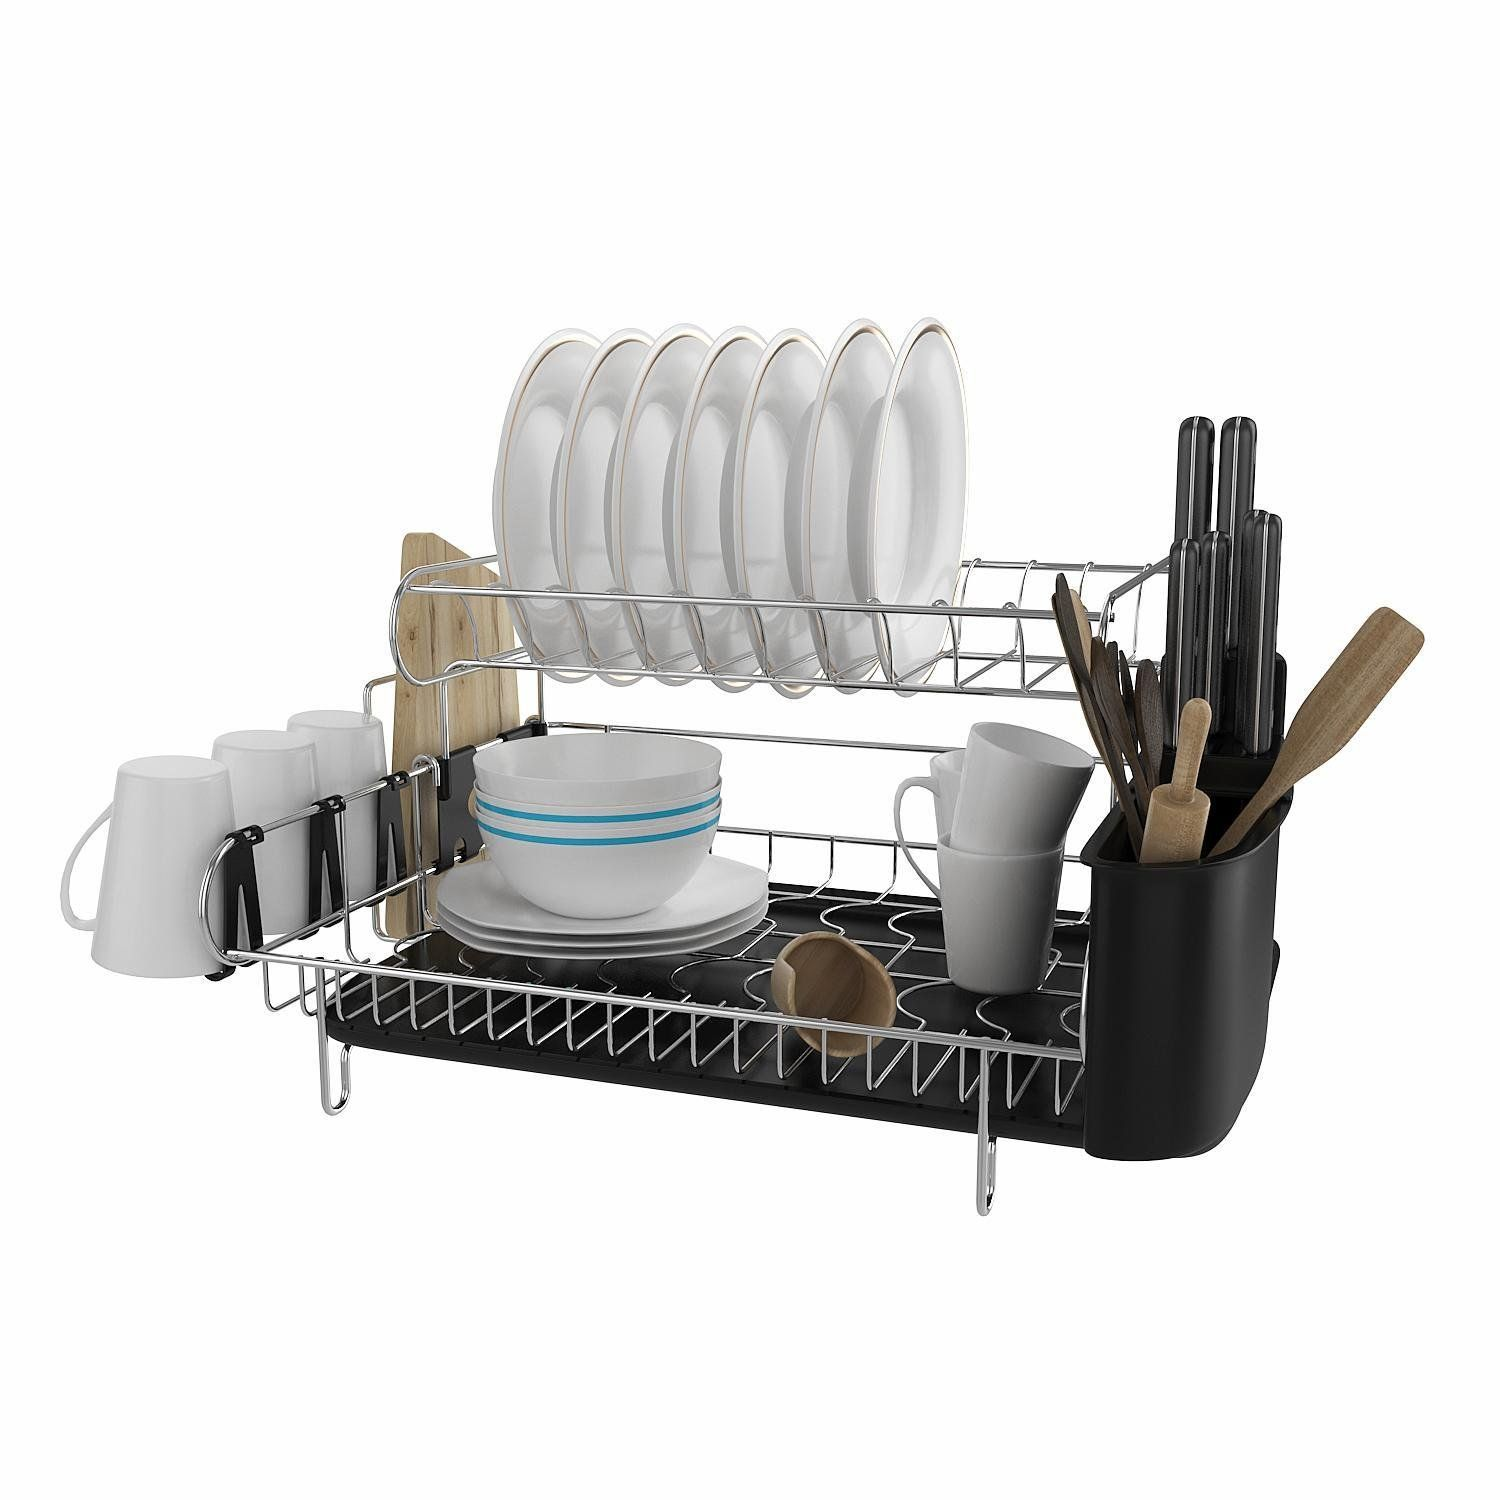 304 Stainless Steel Professional 2 Tier Dish Drying Drainer Rack